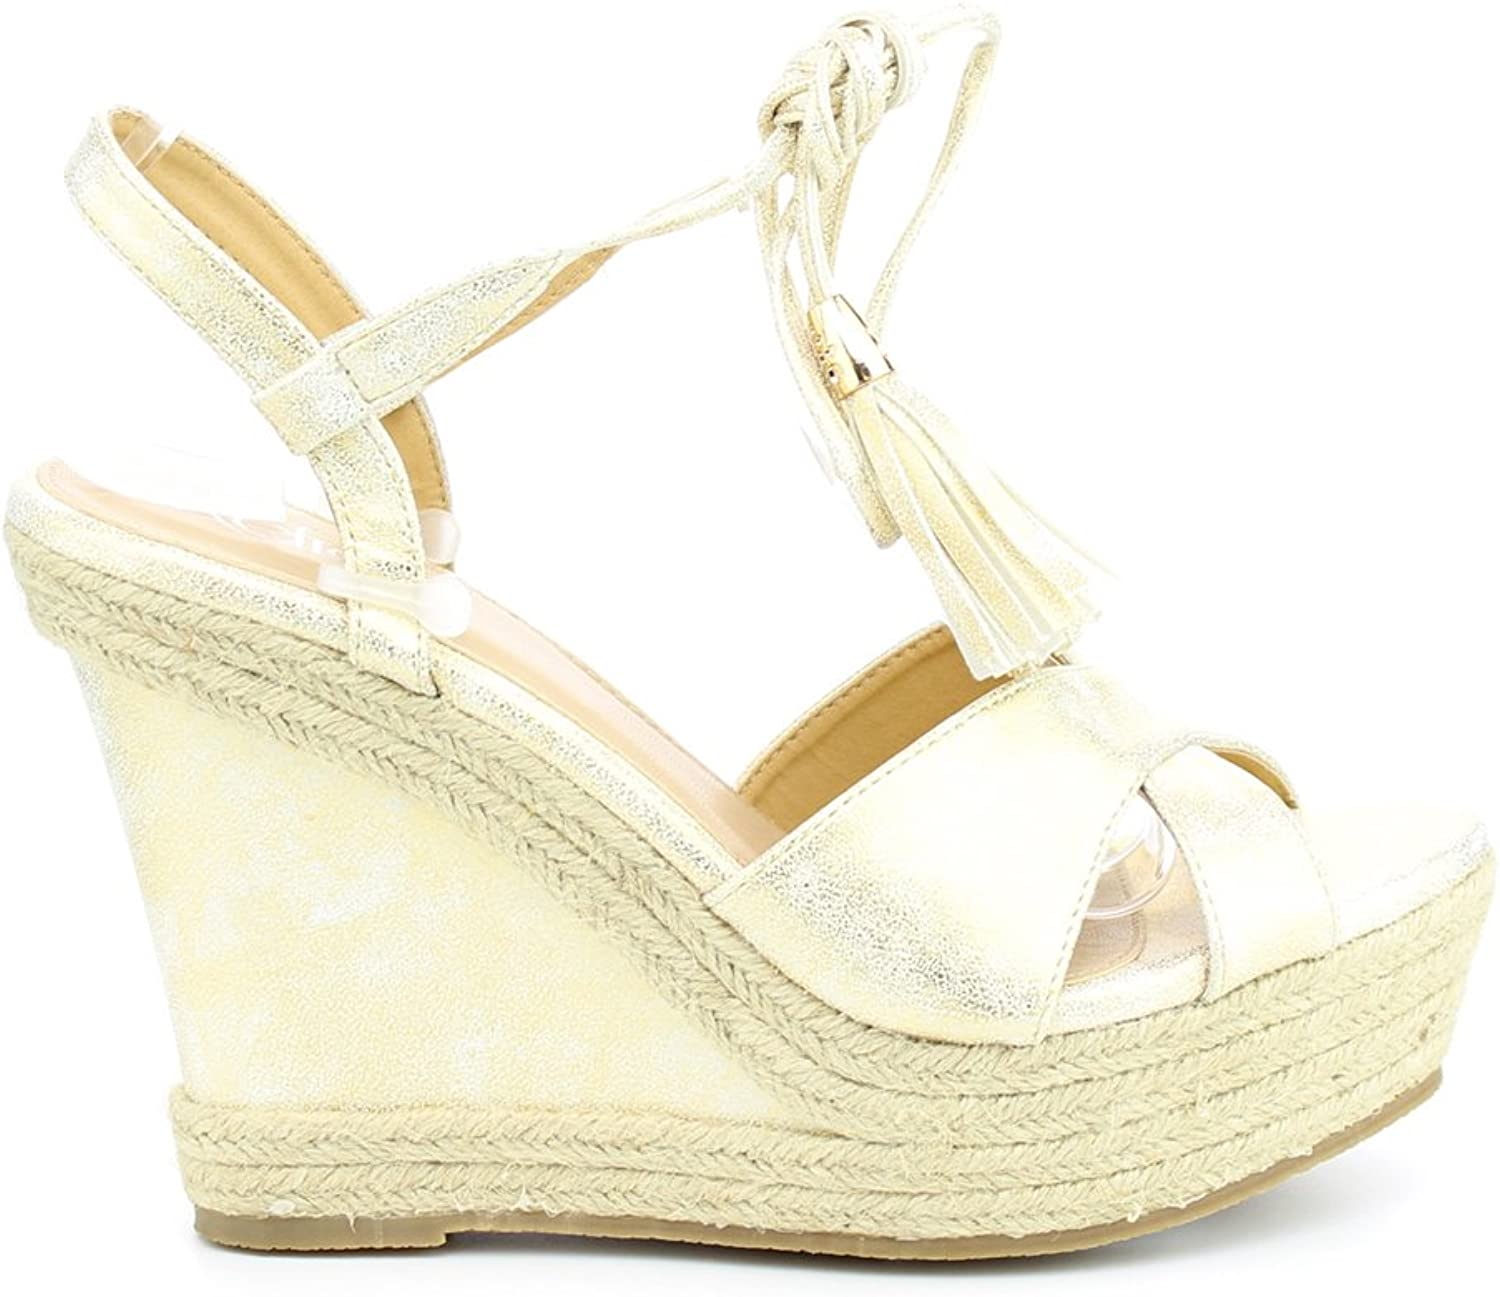 Westcoast Beverly-01 Women's Leatherette Peep Toe Ankle Wrap lace up Wedge Sandal Champagne 10